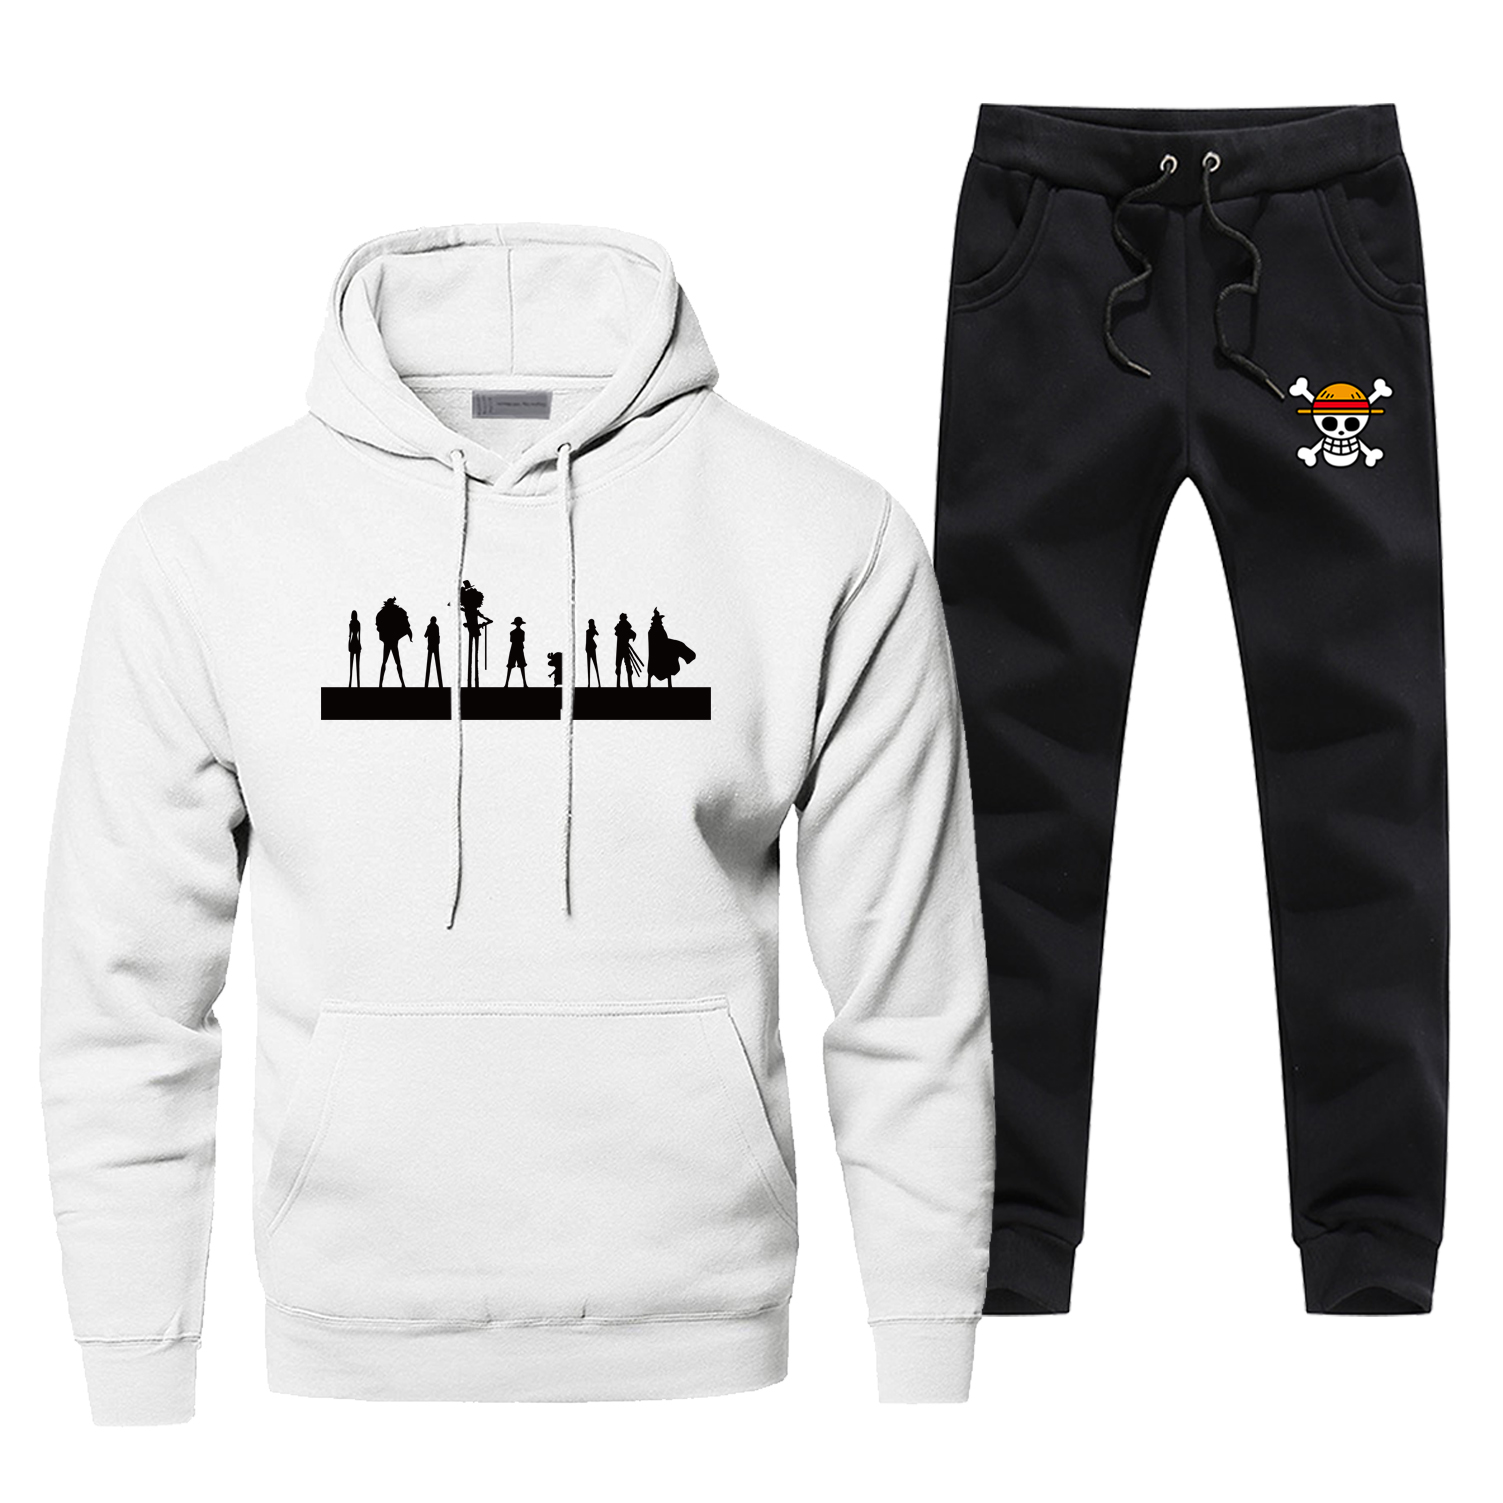 Japan Anime One Piece Hoodies Pants Set Men The Pirate King Sweatshirt Sweatpants Sportswear Autumn Pullover 2 PCS Tracksuit